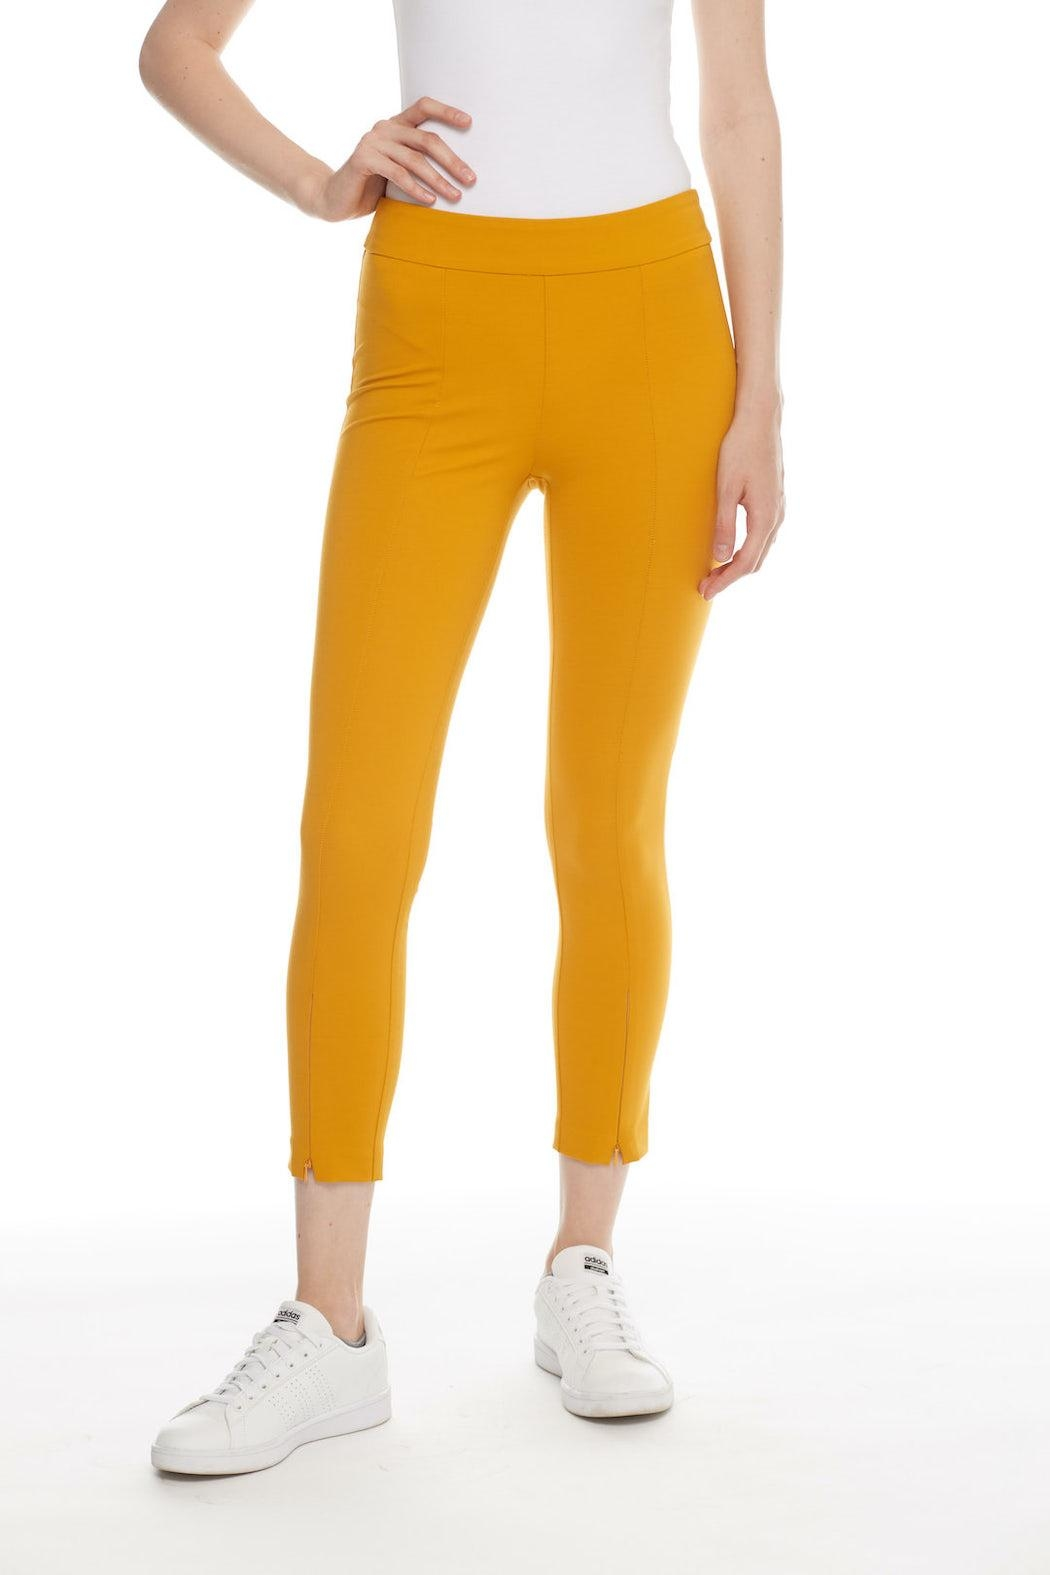 I Love Tyler Madison Liv Pull-On Trouser - Front Cropped Image